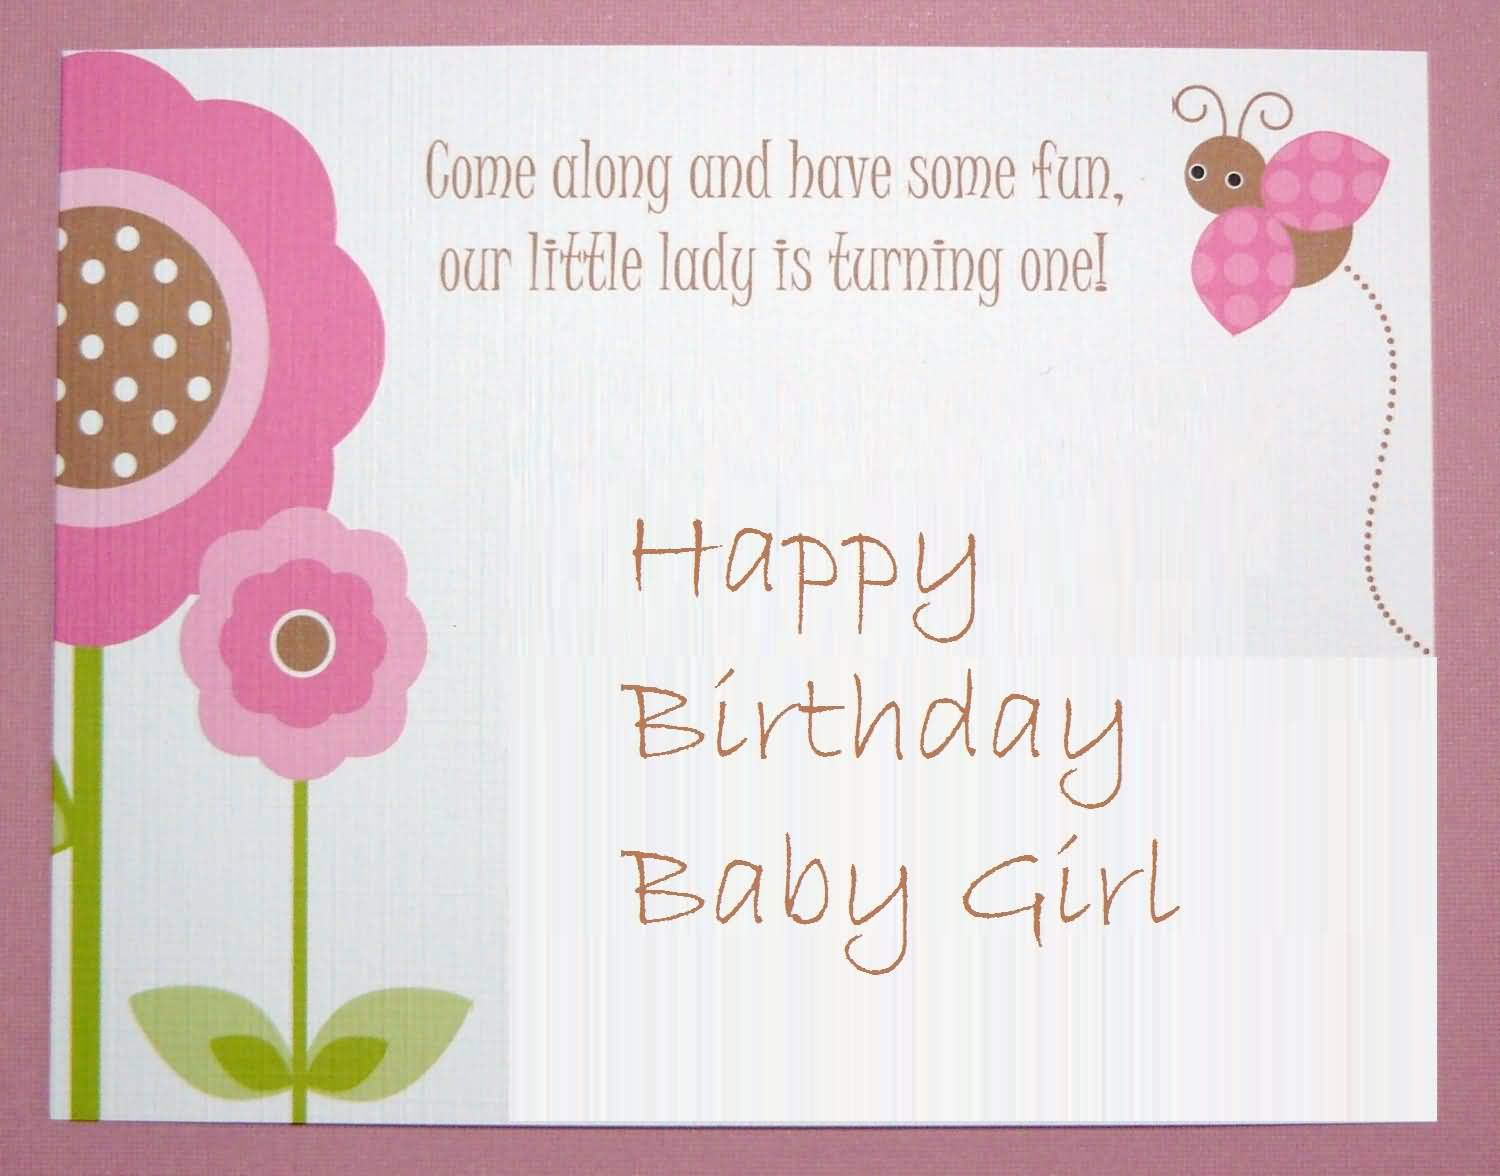 Nice Greetings Birthday Wishes For Baby Girl